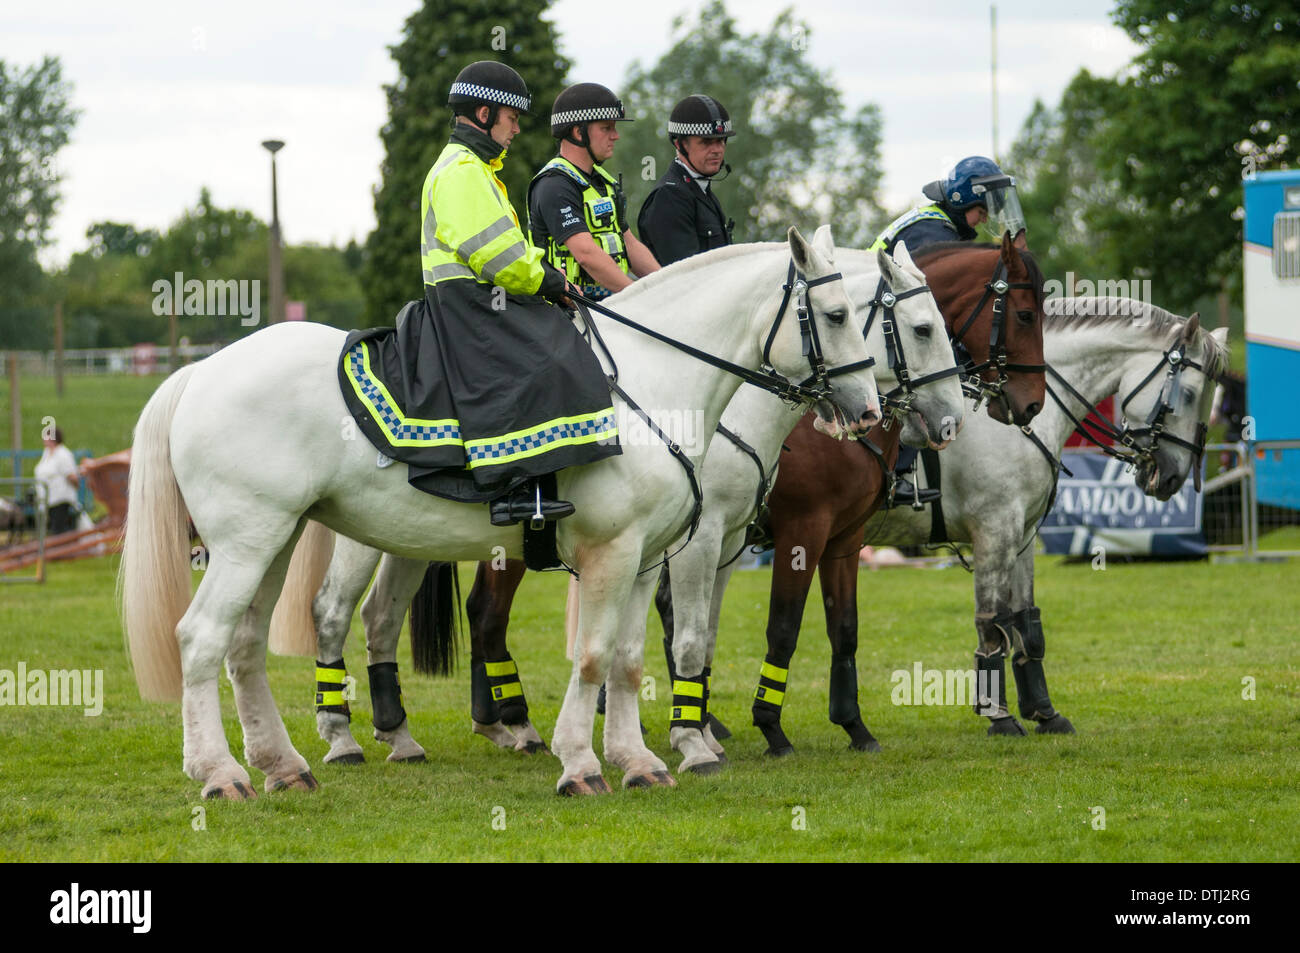 Four British mounted Police Officers on display at a Horse show. - Stock Image